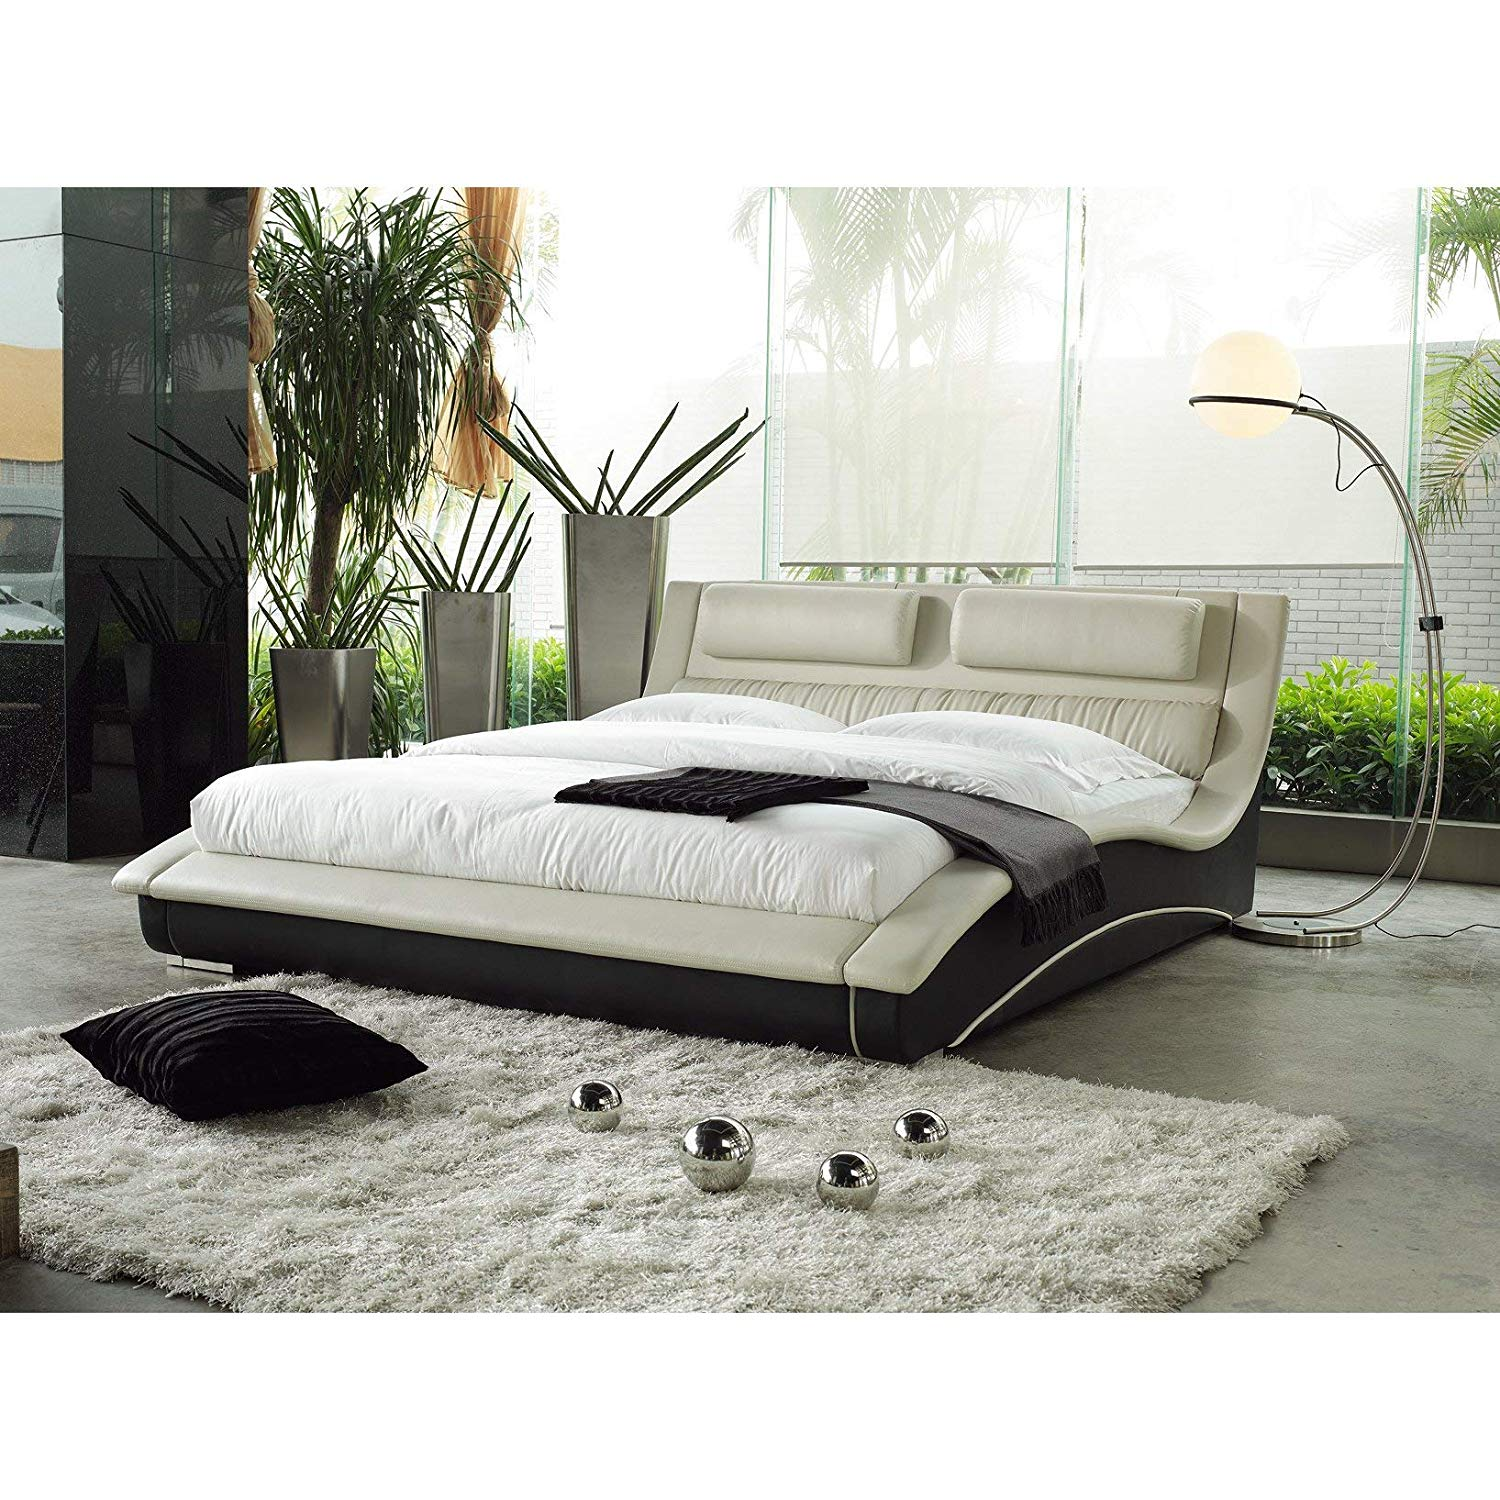 Best Quality Modern Wood Platform Bed